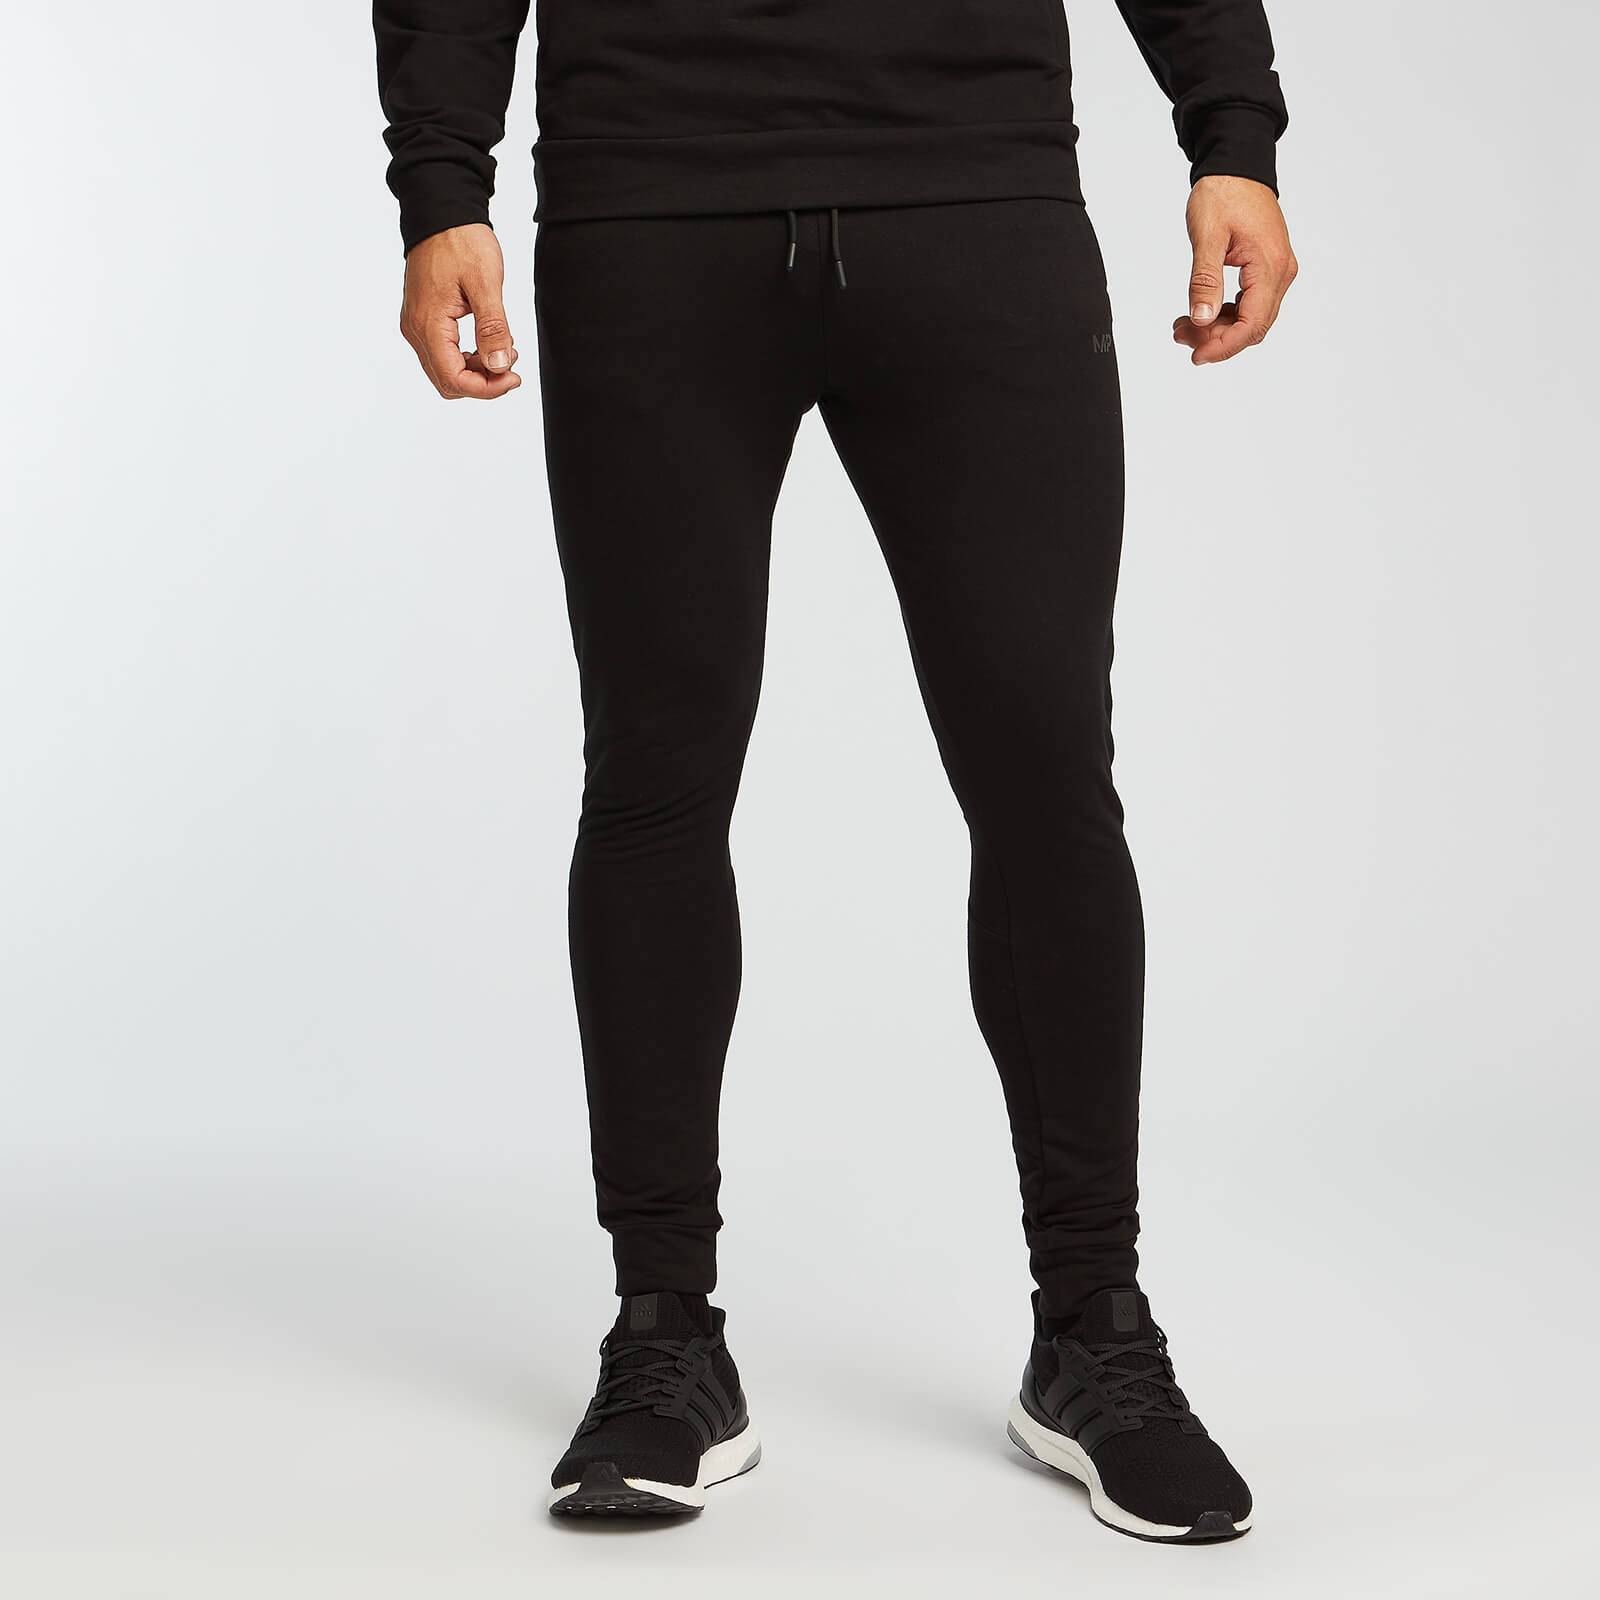 Myprotein Pantaloni da jogging slim fit MP Form da uomo - Neri - XL